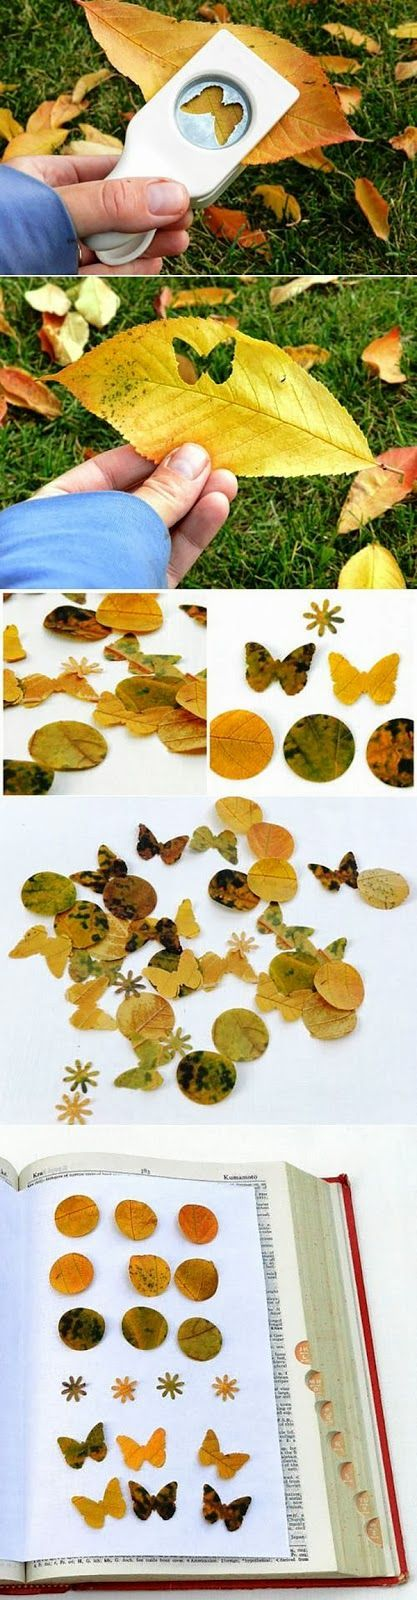 Craft Punched Leaves to create art for autumn! Cute idea!